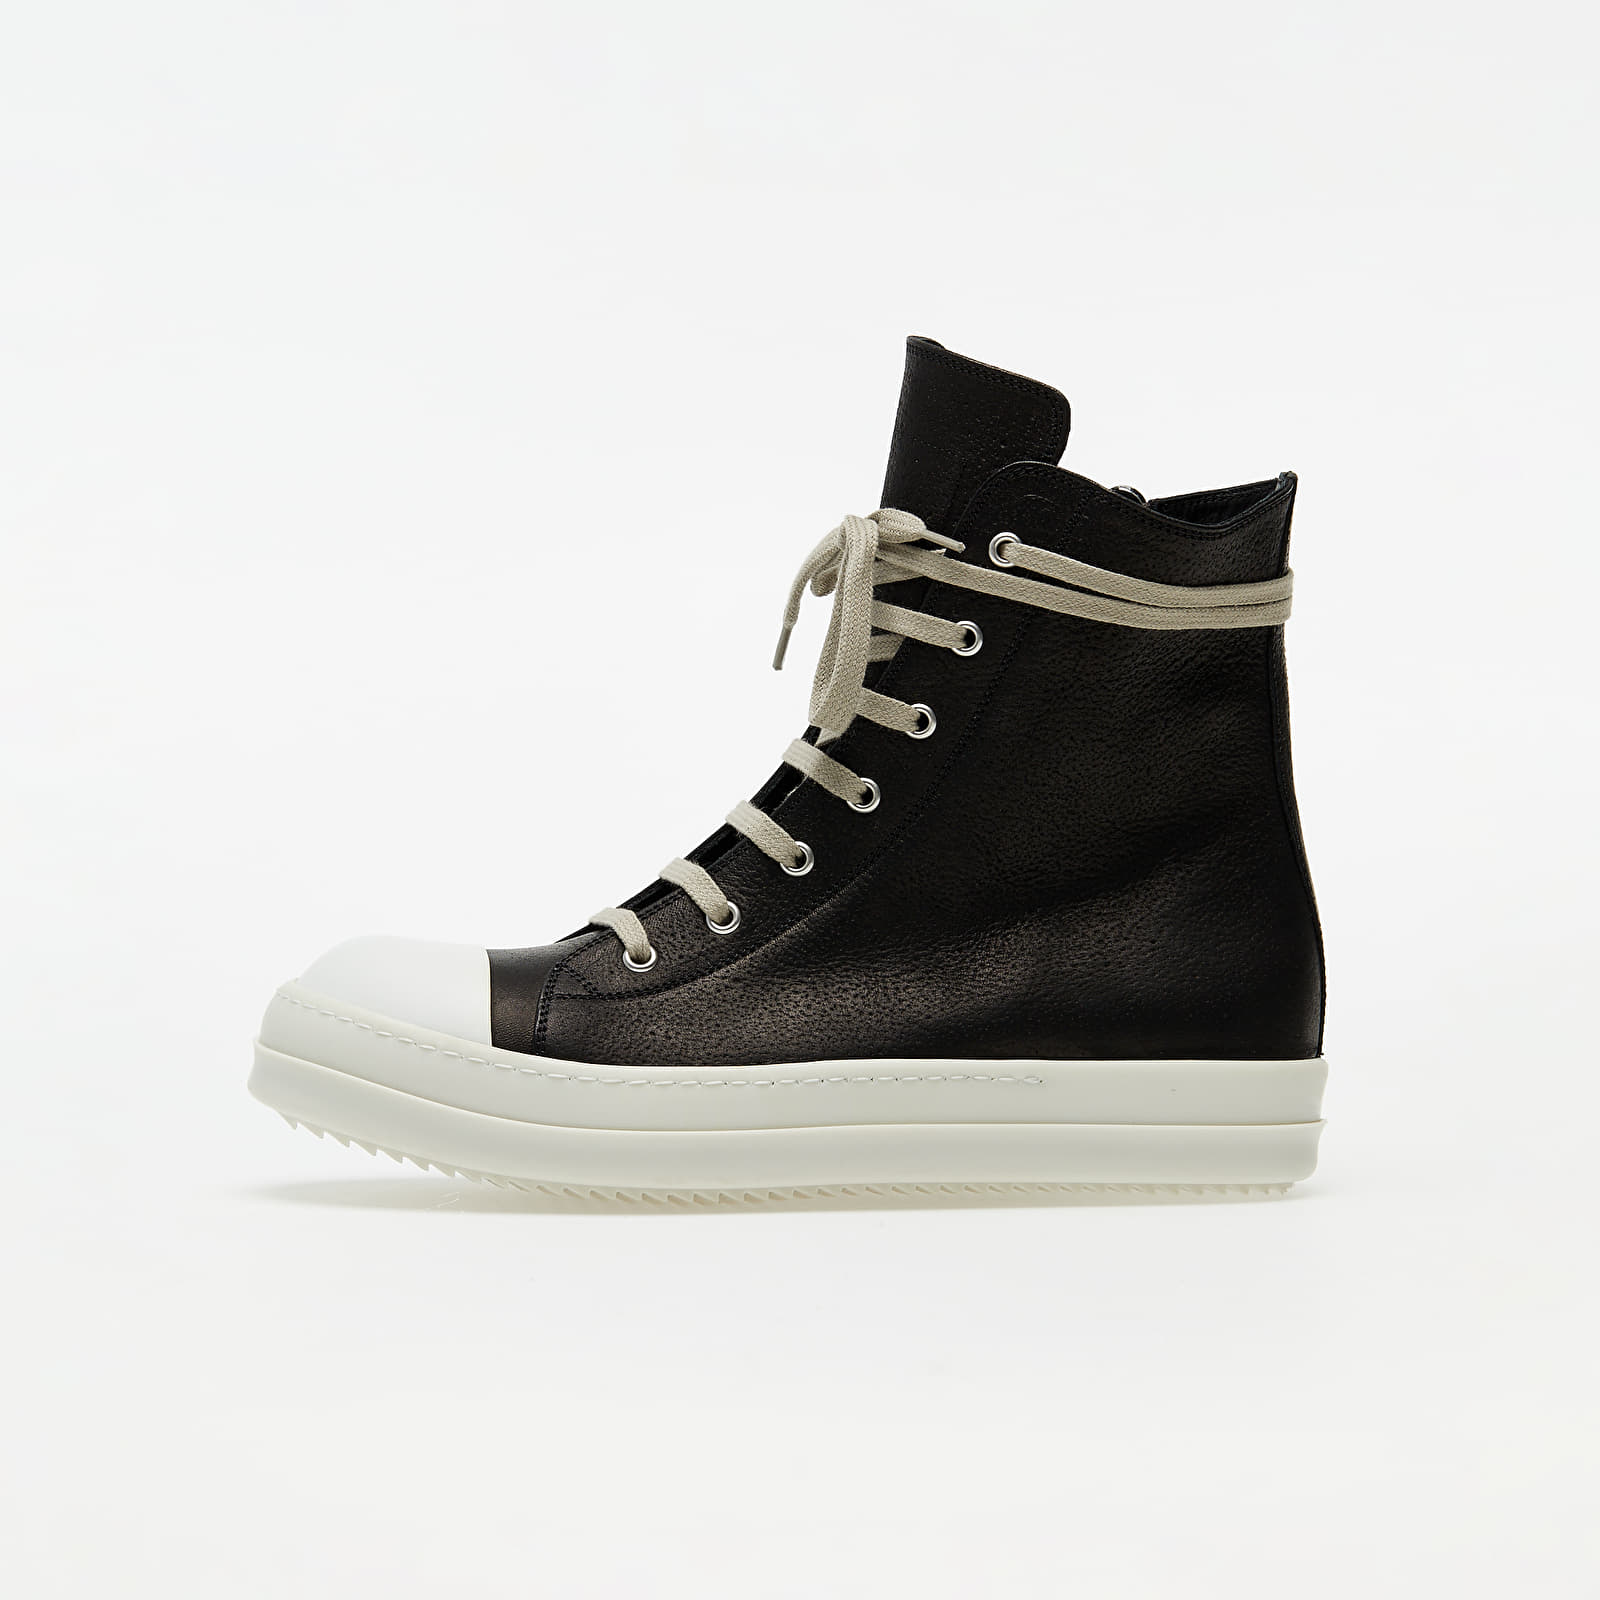 Chaussures et baskets homme Rick Owens Sneakers Black/ White